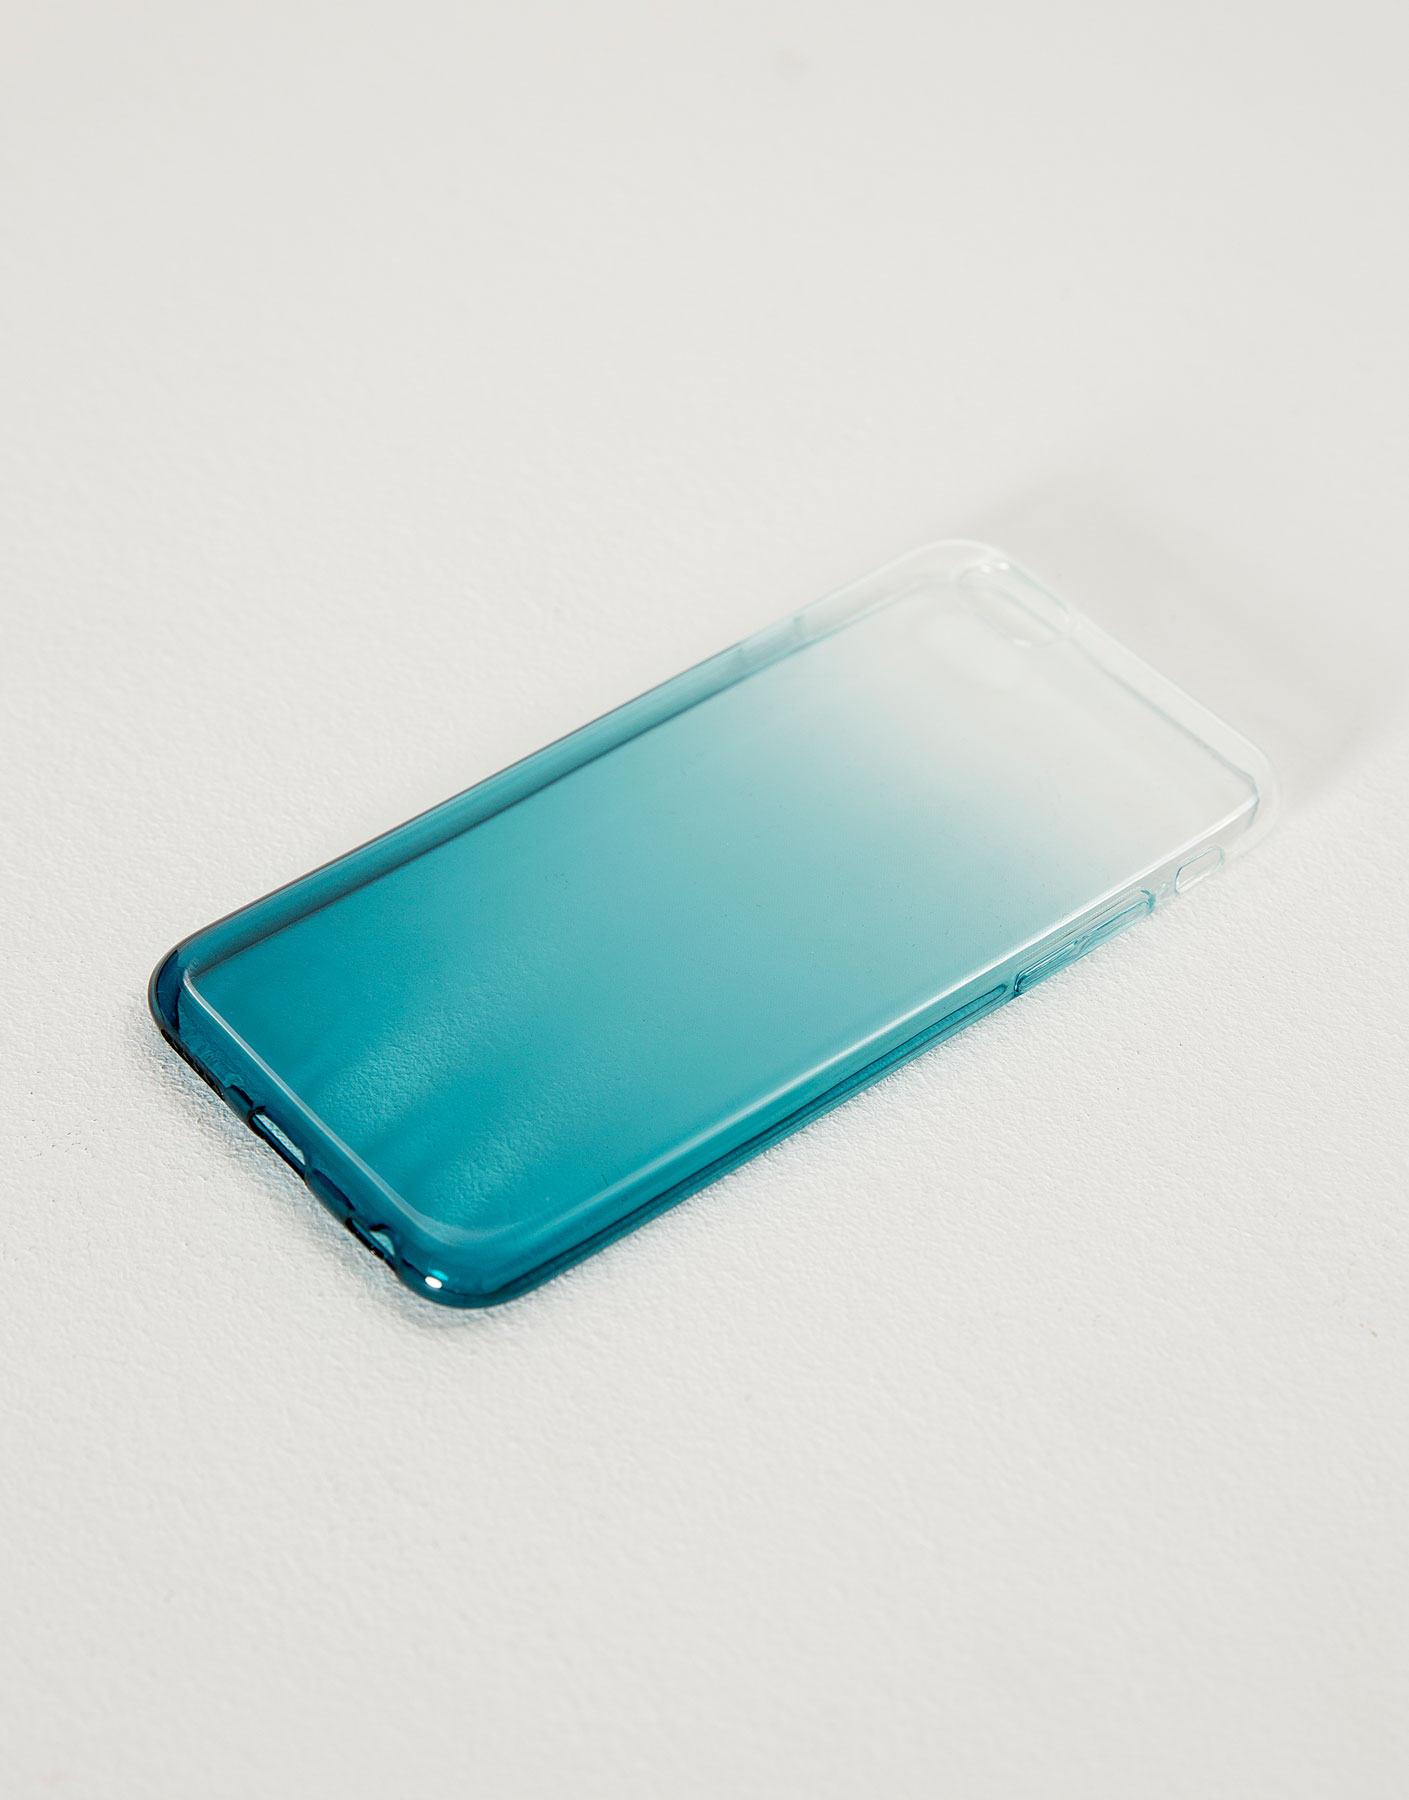 Funda móvil degradado transparente